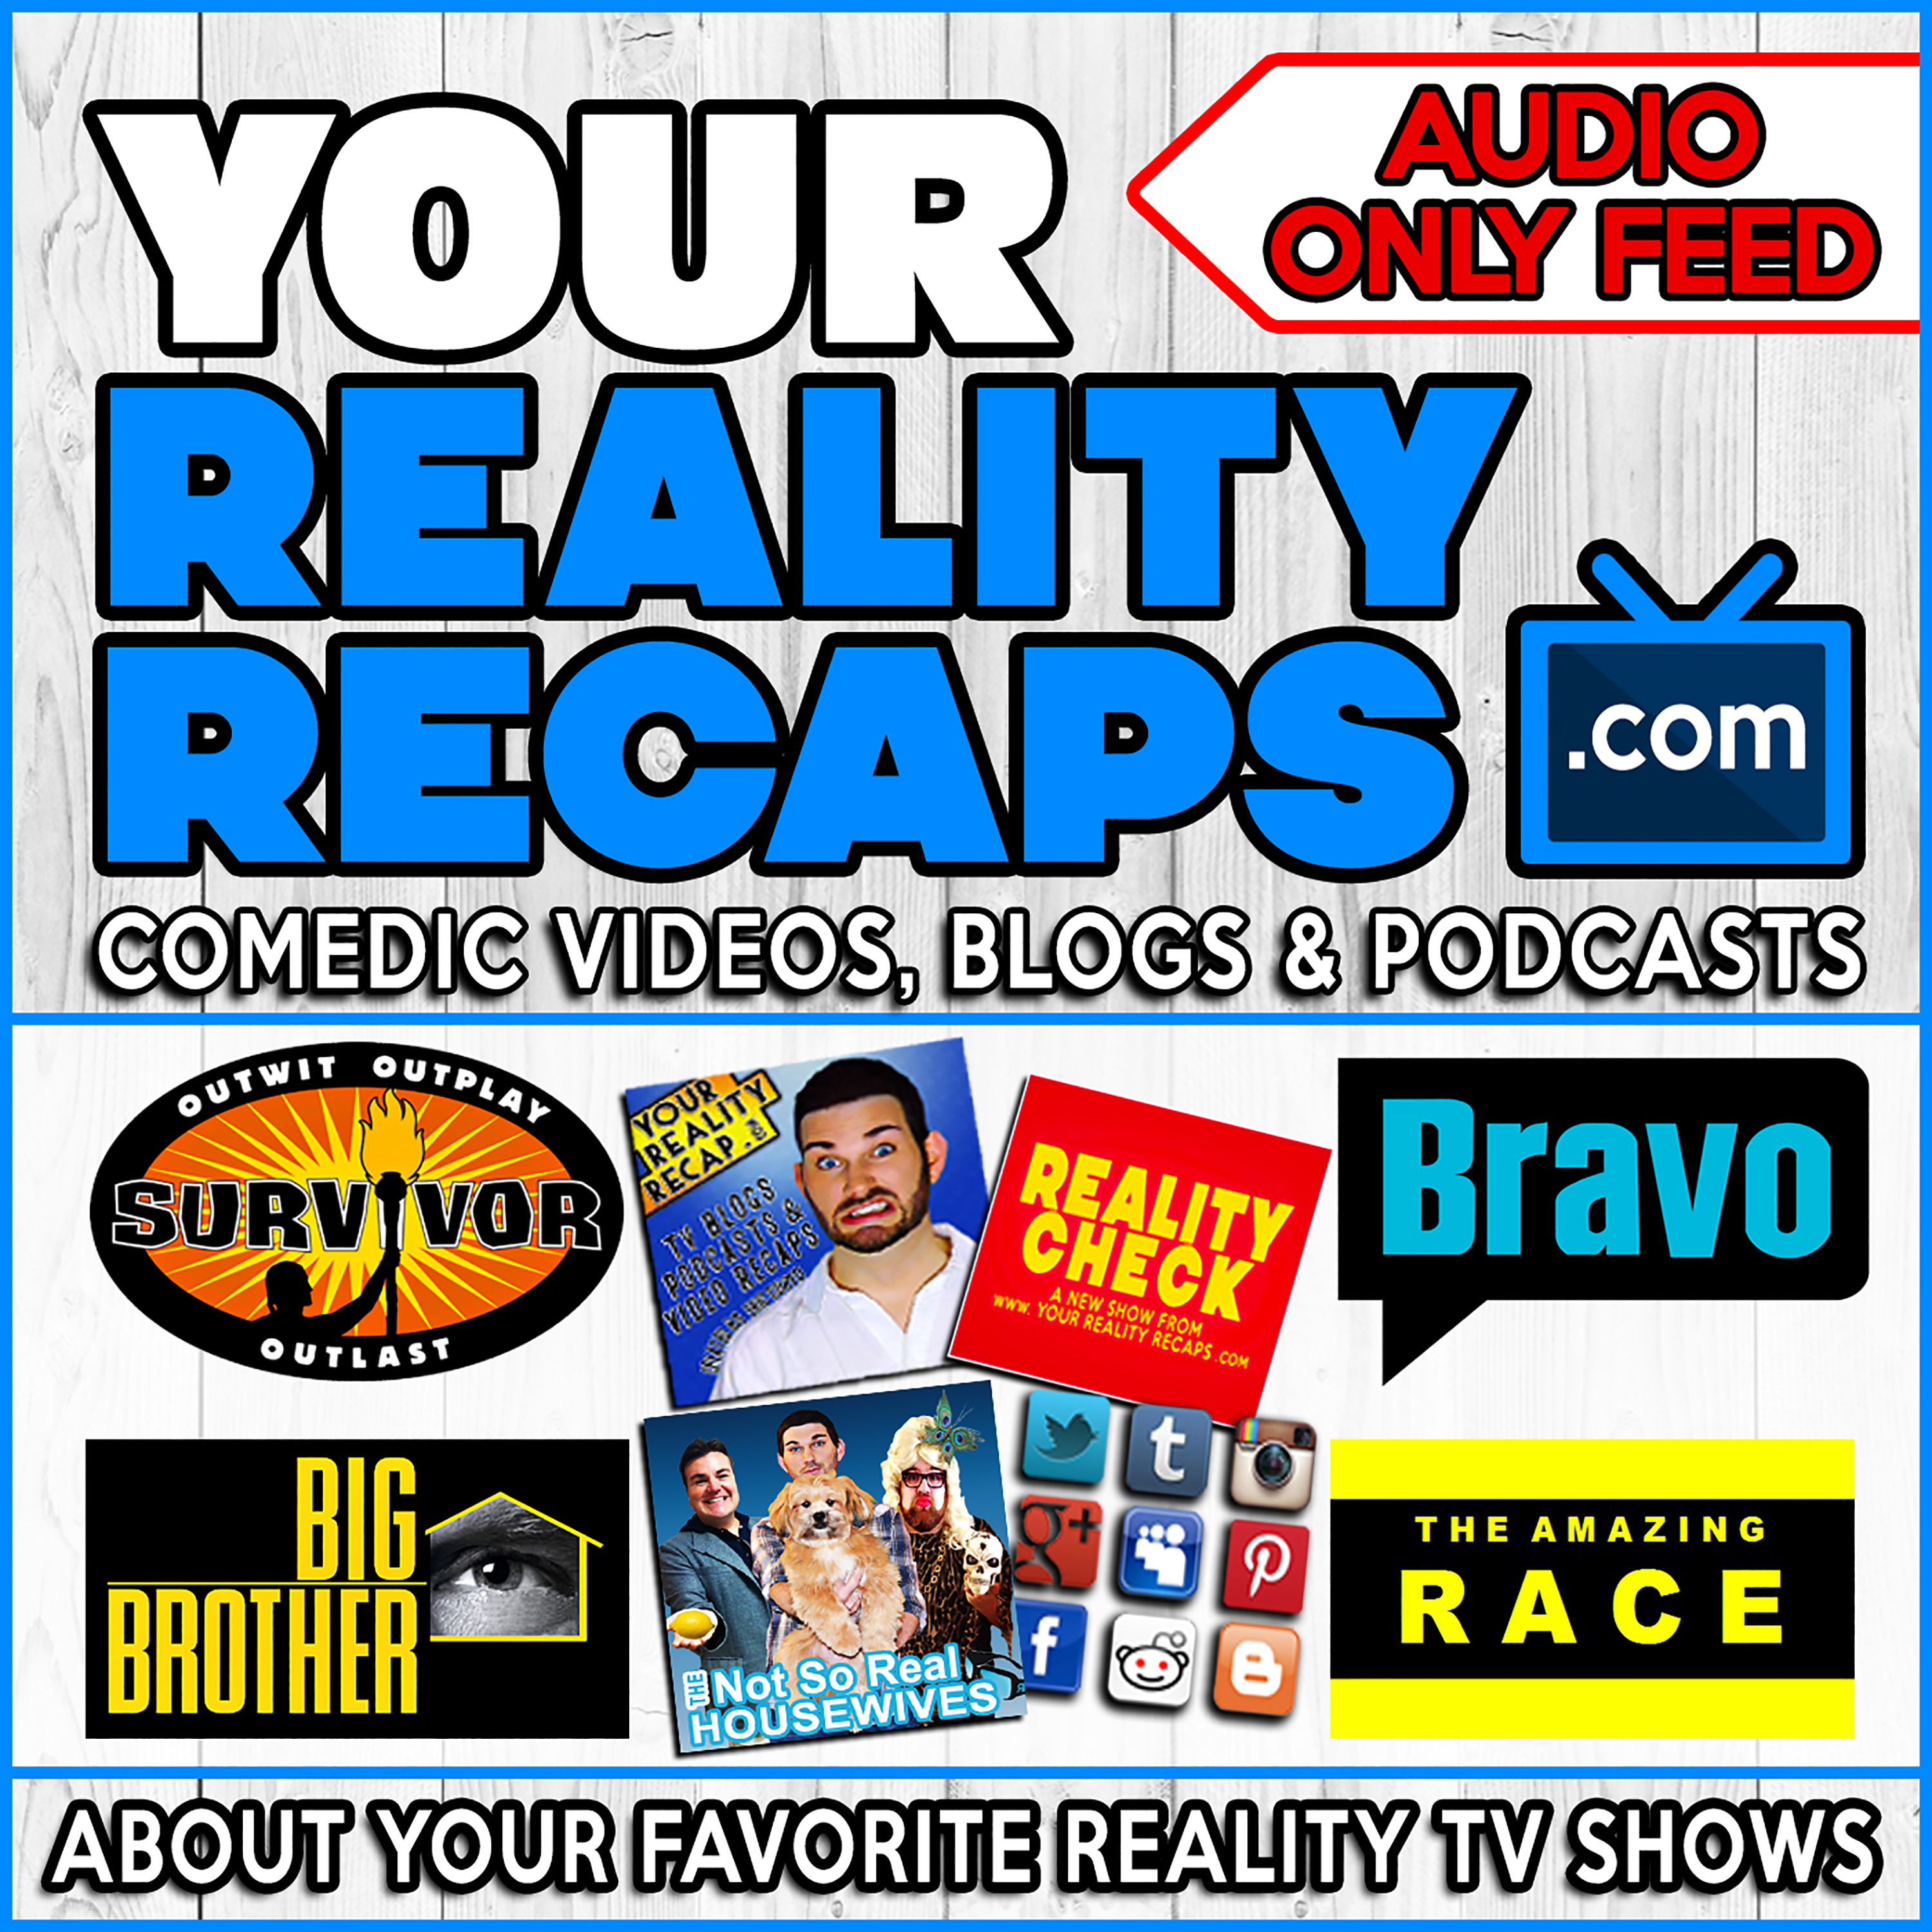 Your Reality Recaps: ALL SHOWS PODCAST FEED